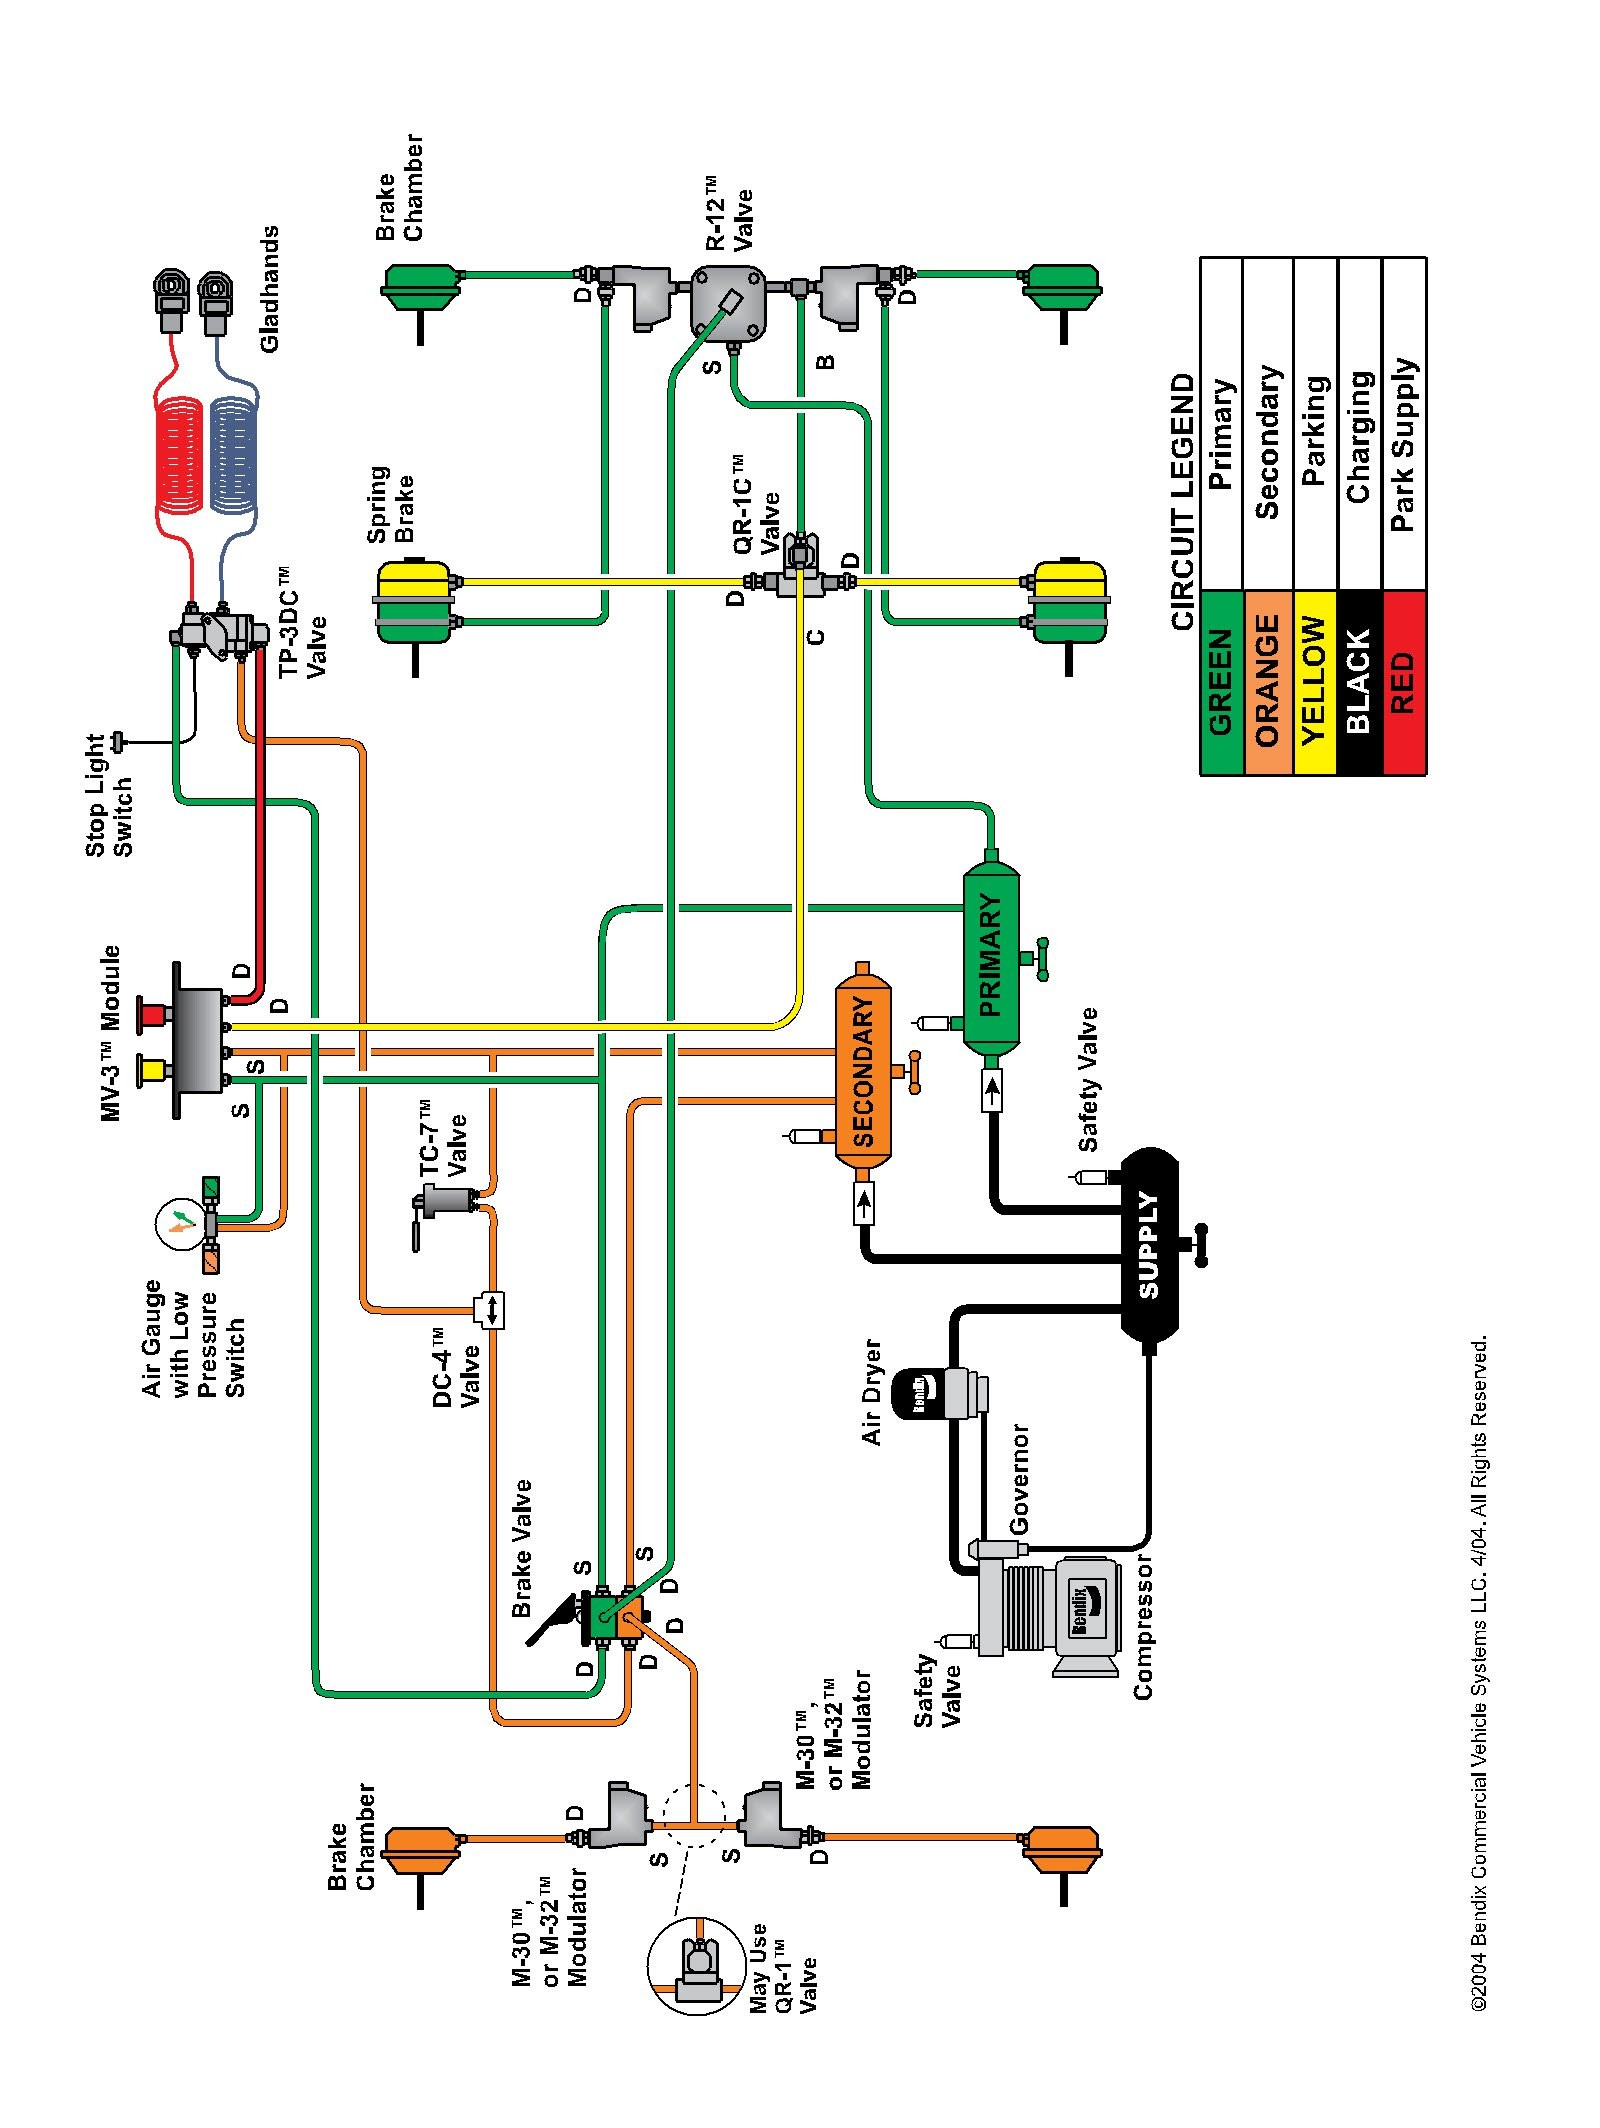 Diesel Engine Fuel System Diagram Dodge Cummins Line Obd2 Wiring 7 3 Powerstroke Google Search Of